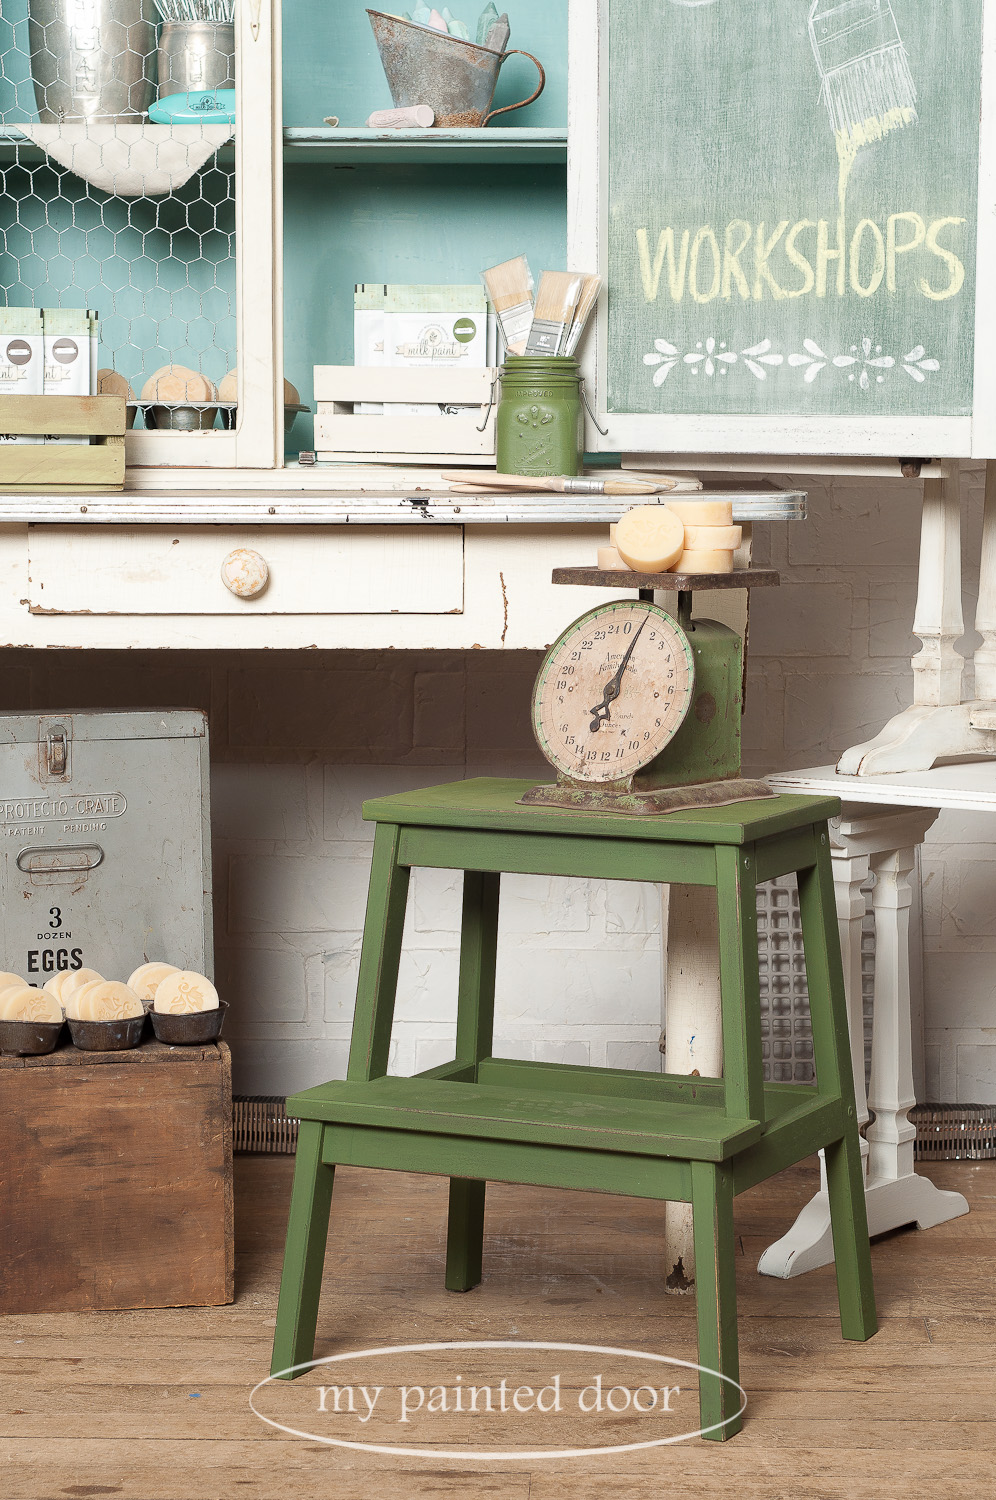 How to paint an Ikea stool to look like a farmhouse stool